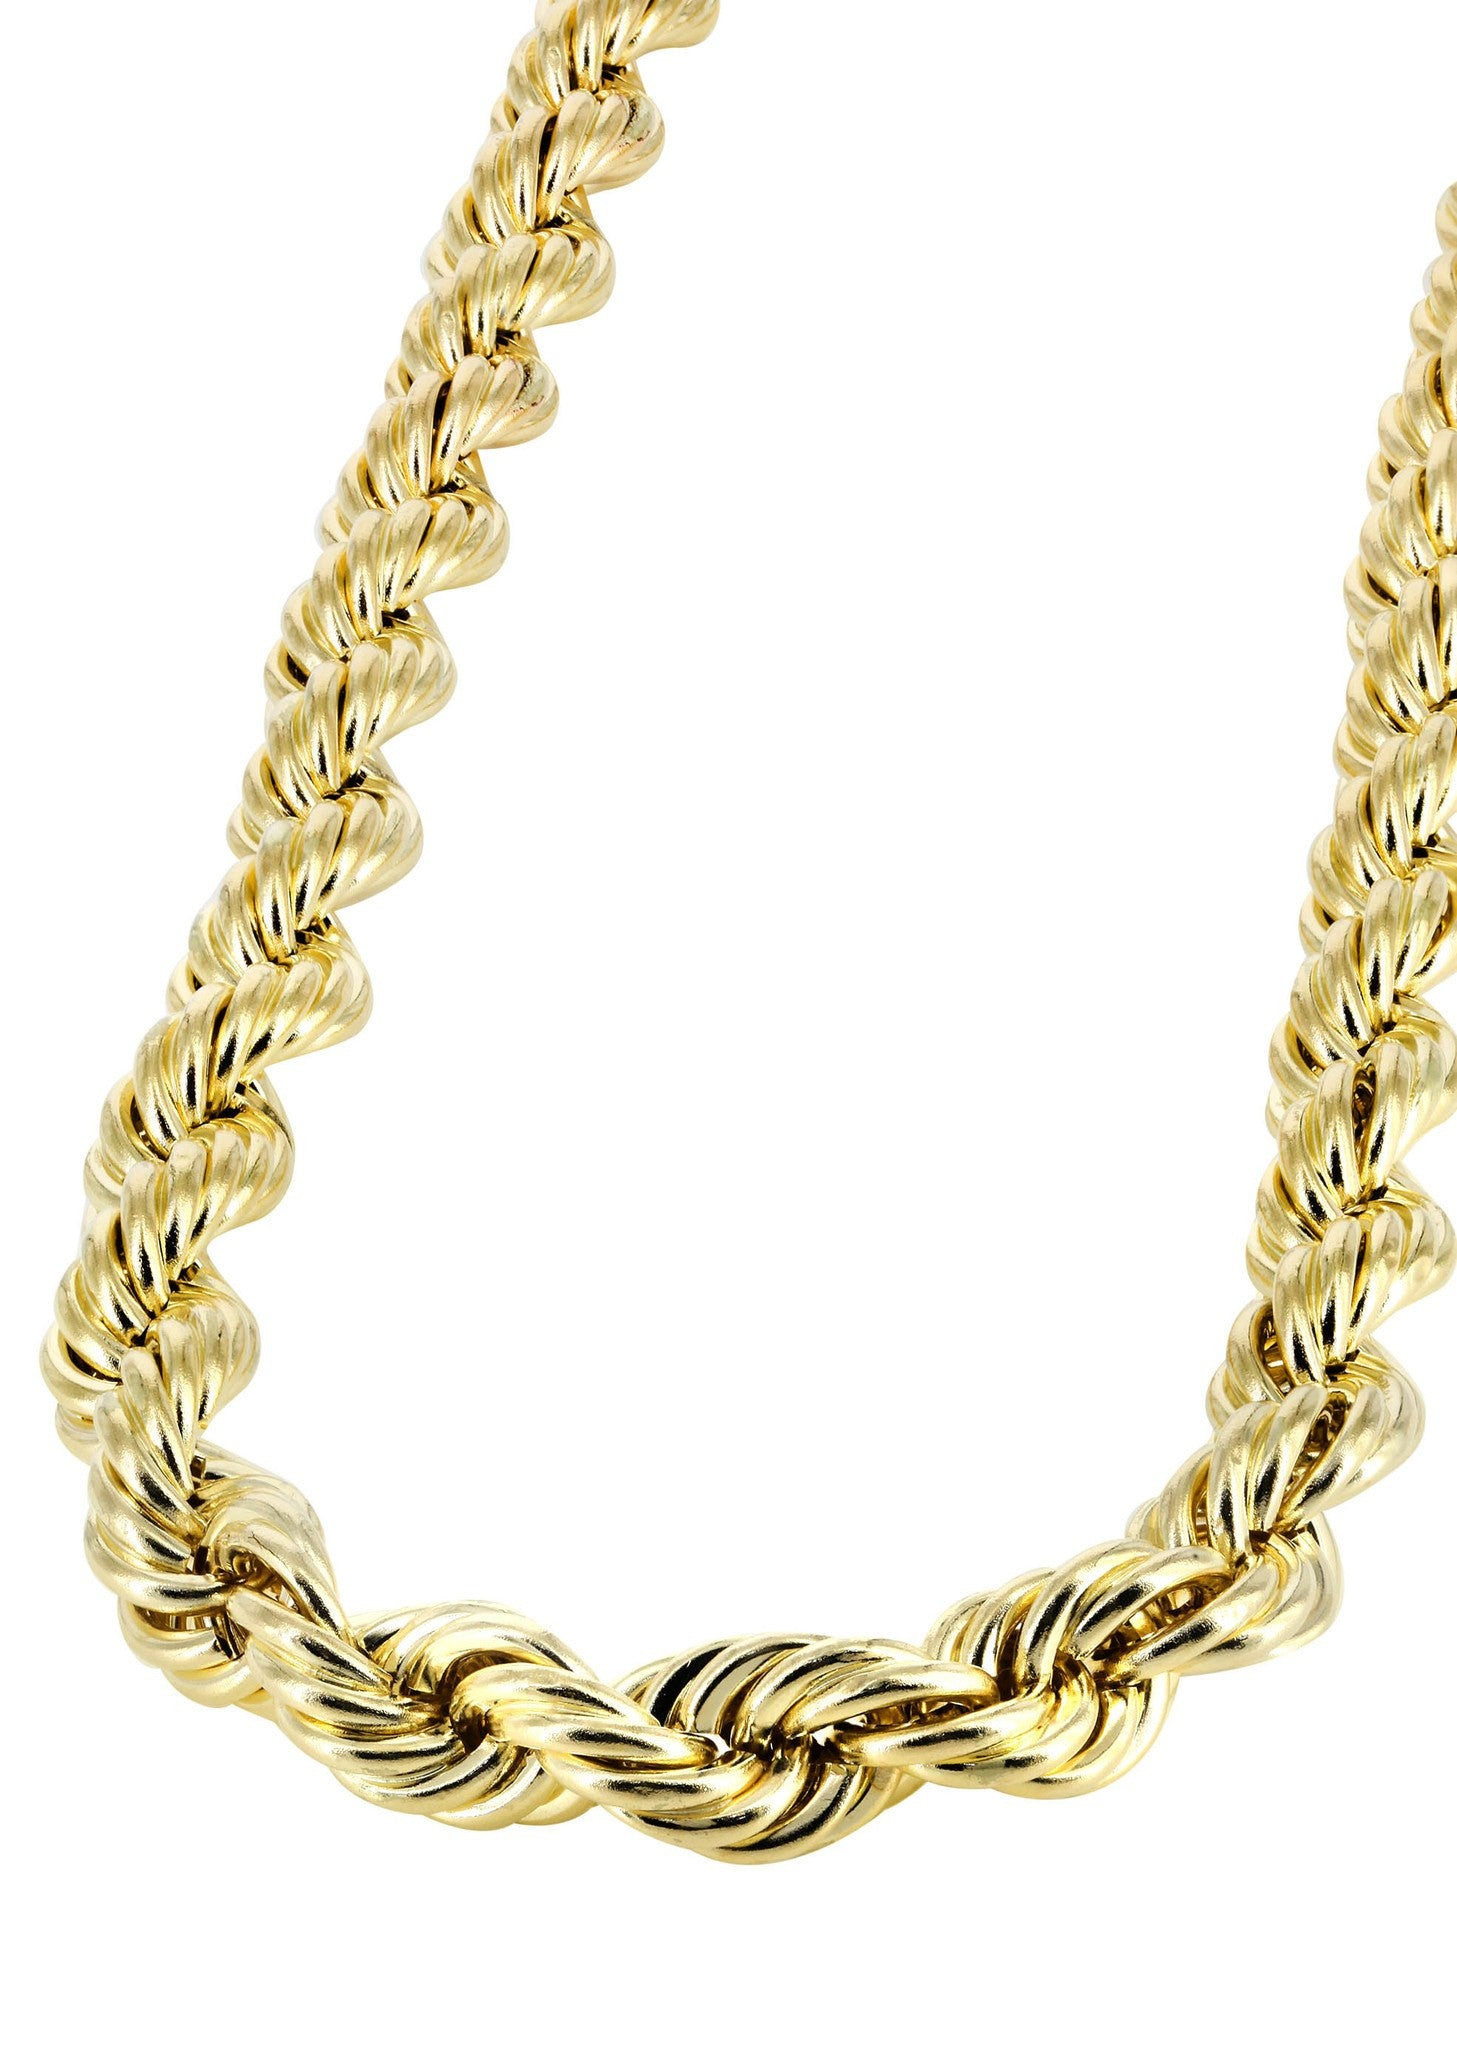 3252b0a2c3402 14K Yellow Gold Chain - Hollow Mens Rope Chain – FrostNYC